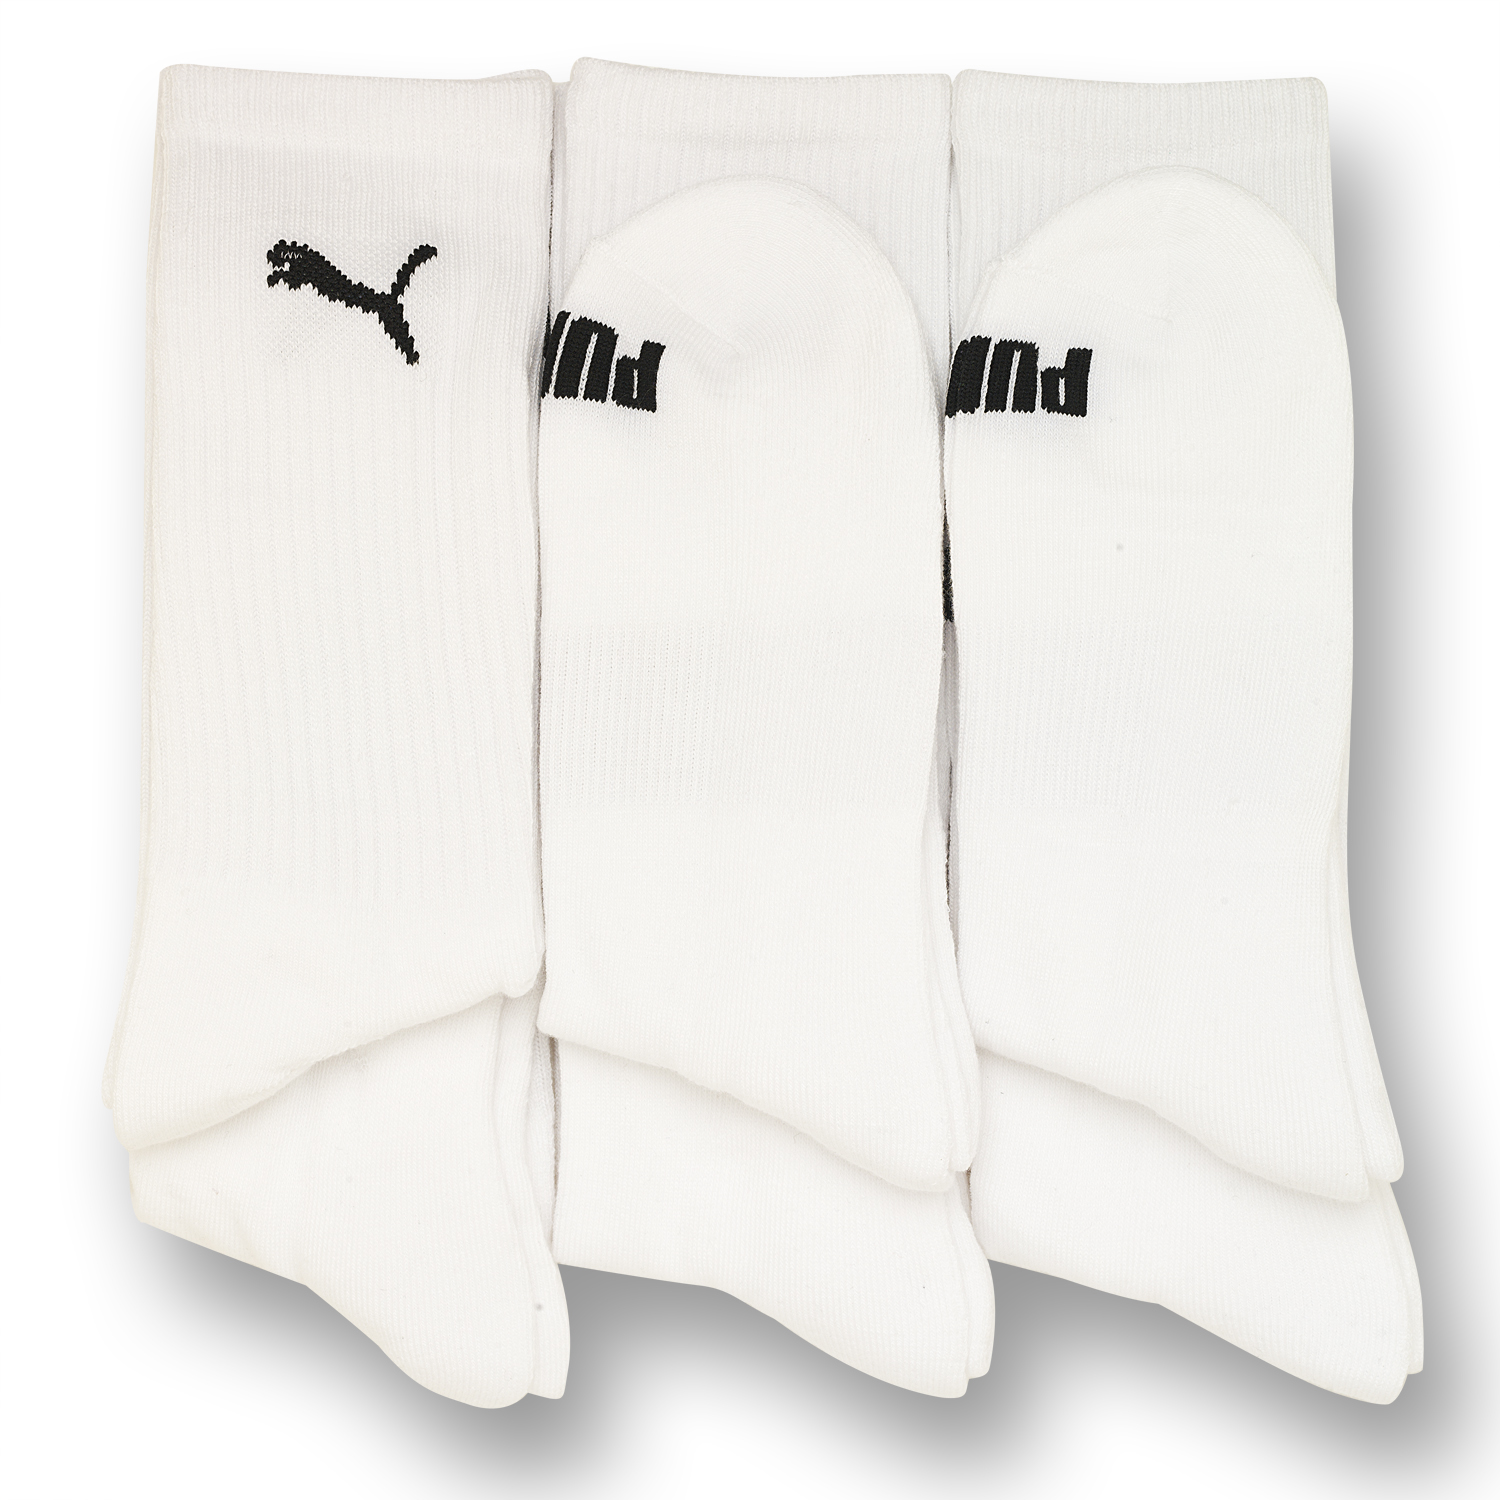 6 Pack: Mens Moisture Wicking Puma Crew Socks